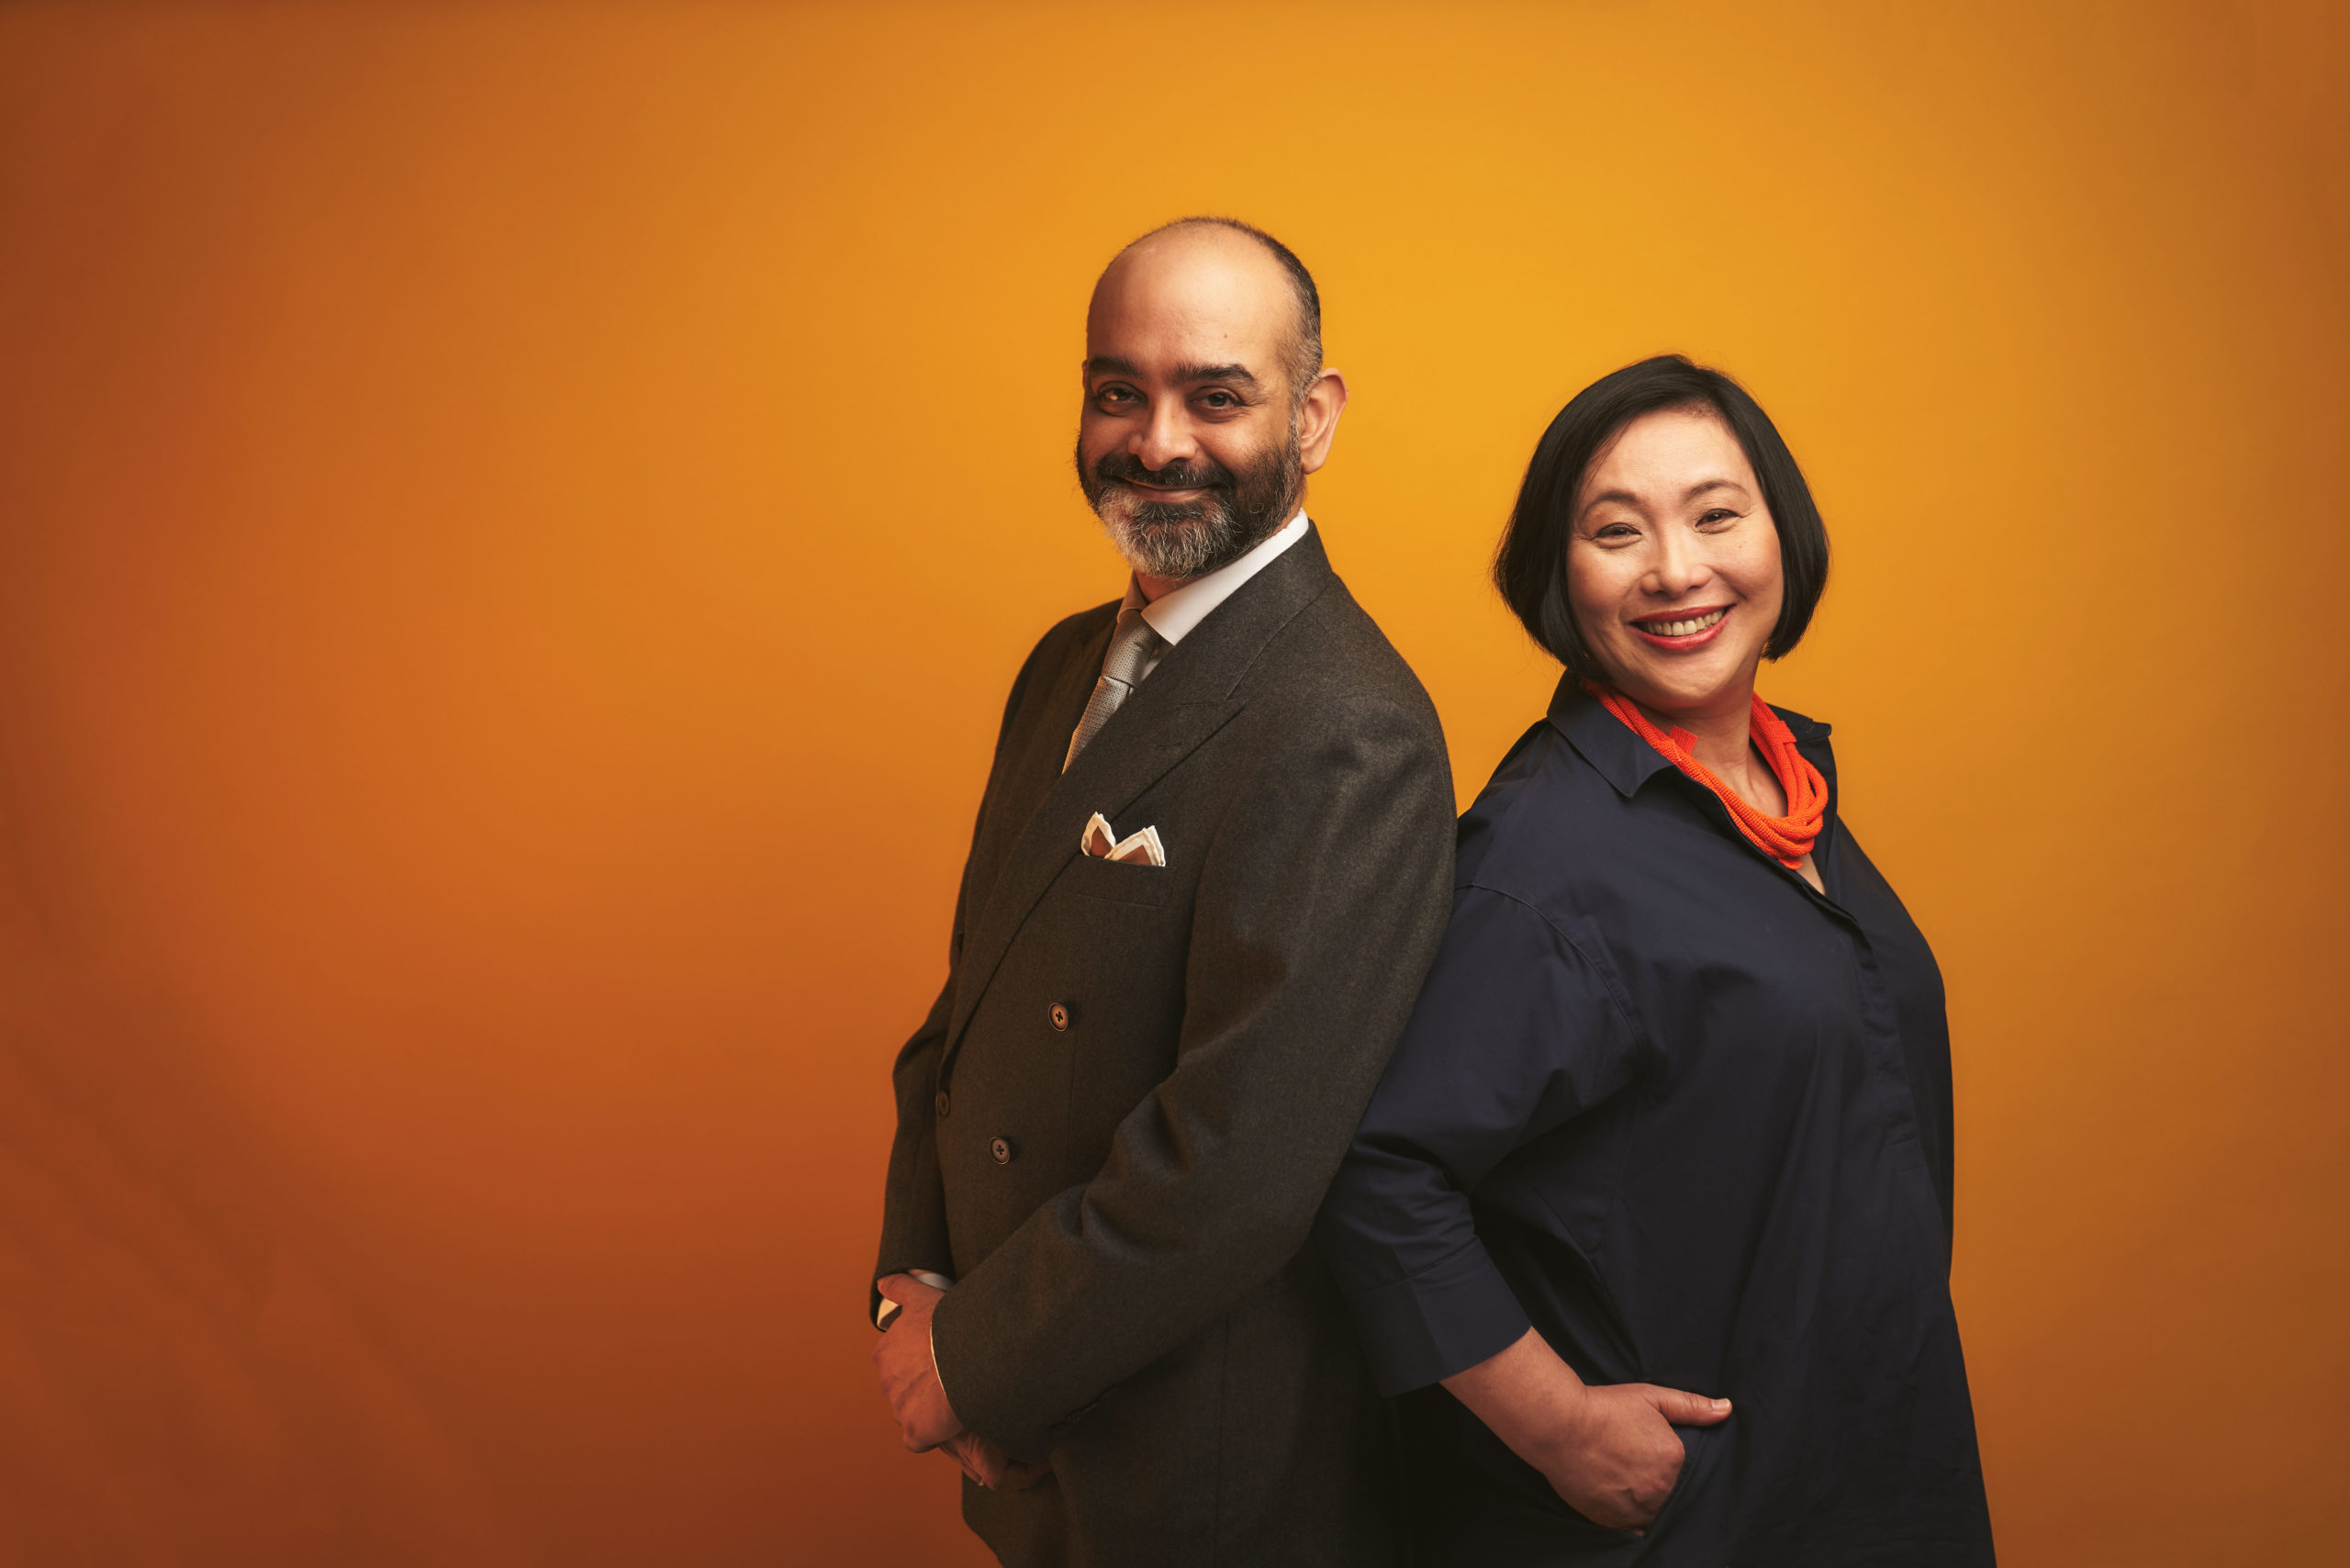 Claire Wong and Huzir Sulaiman